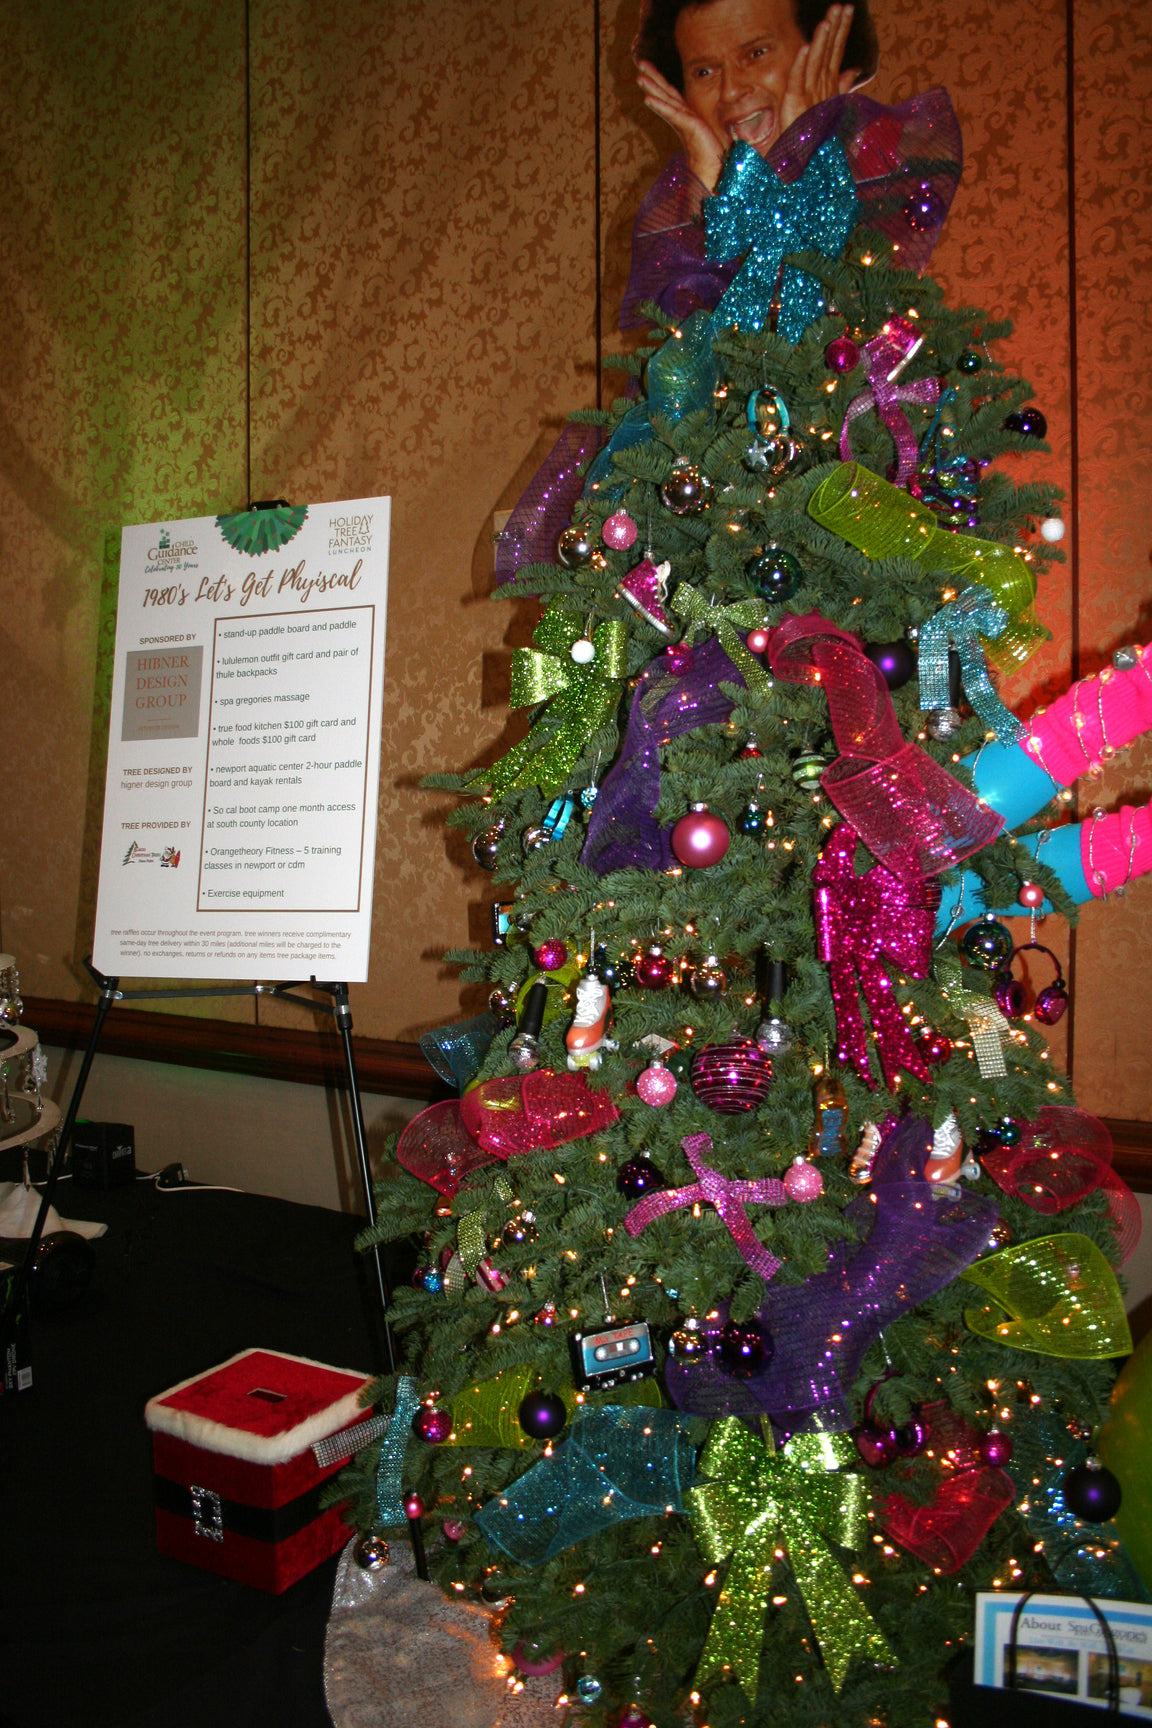 A 80s themed Christmas tree next to an information board titled 1980's Let's get physical